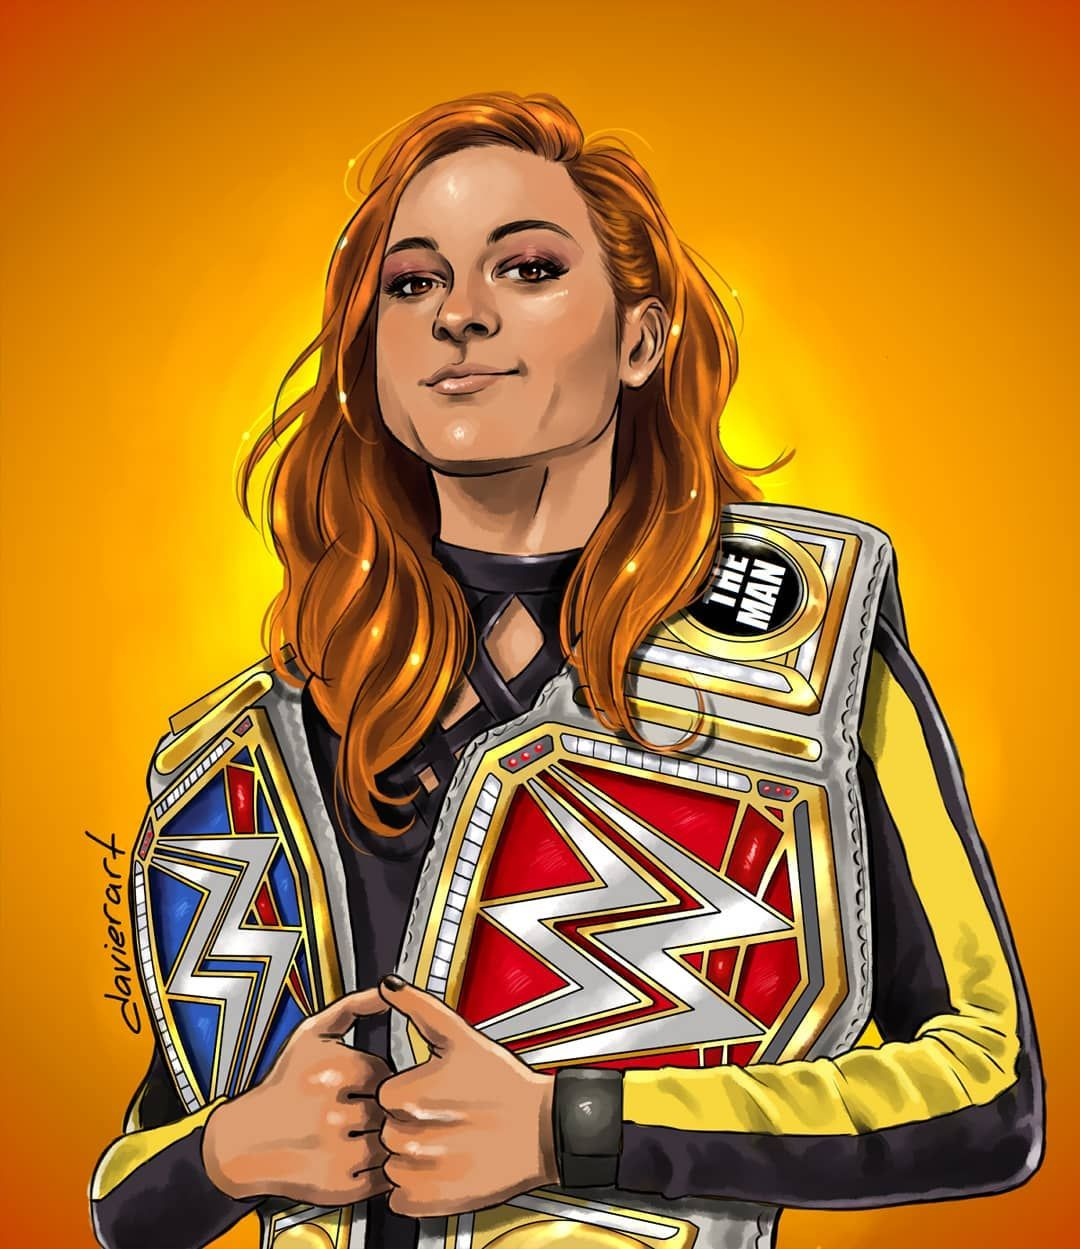 BECKY LYNCH WWE POSTER WRESTLING IMAGE PRINT A3 A4 SIZE